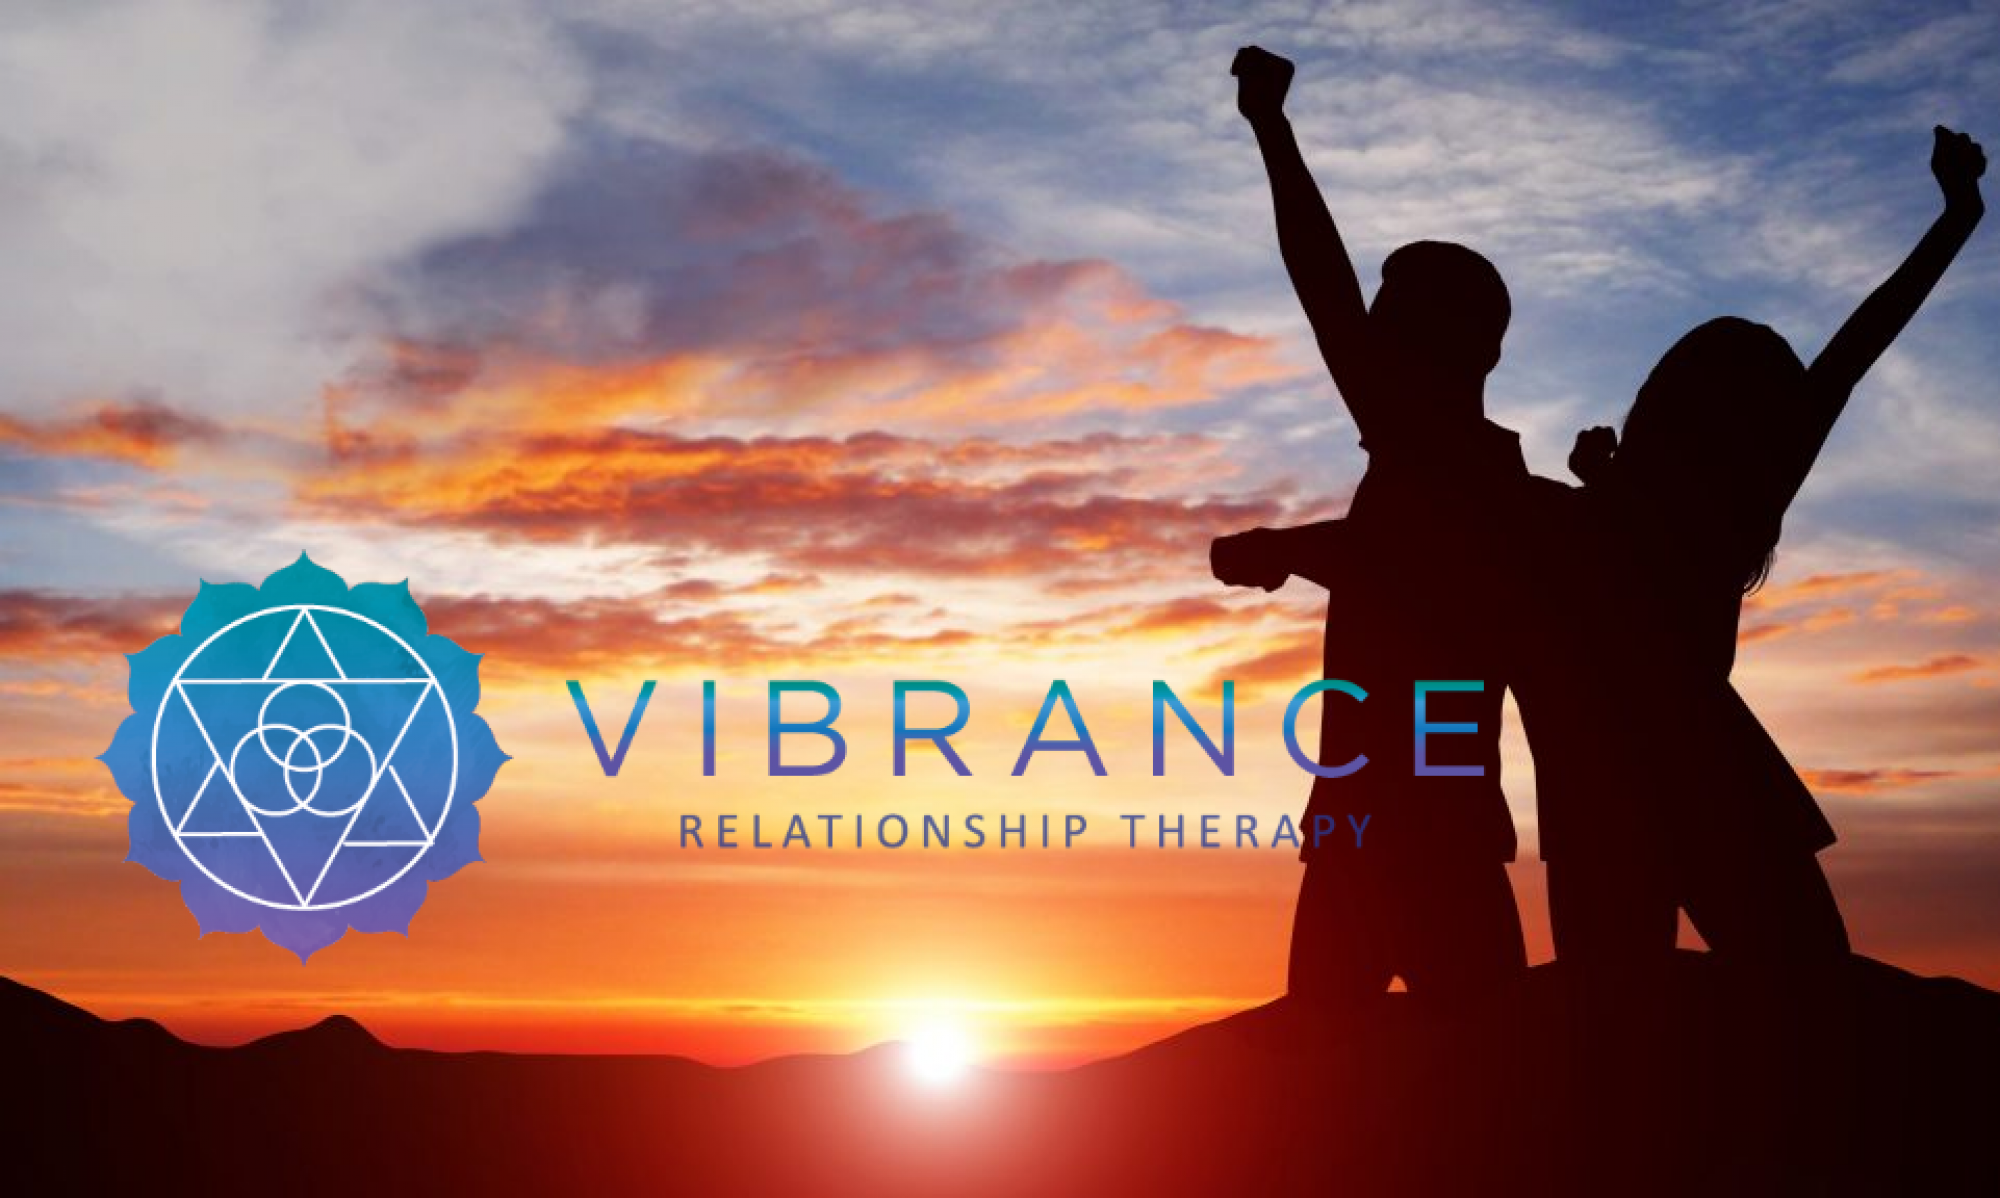 Vibrance Relationship Therapy